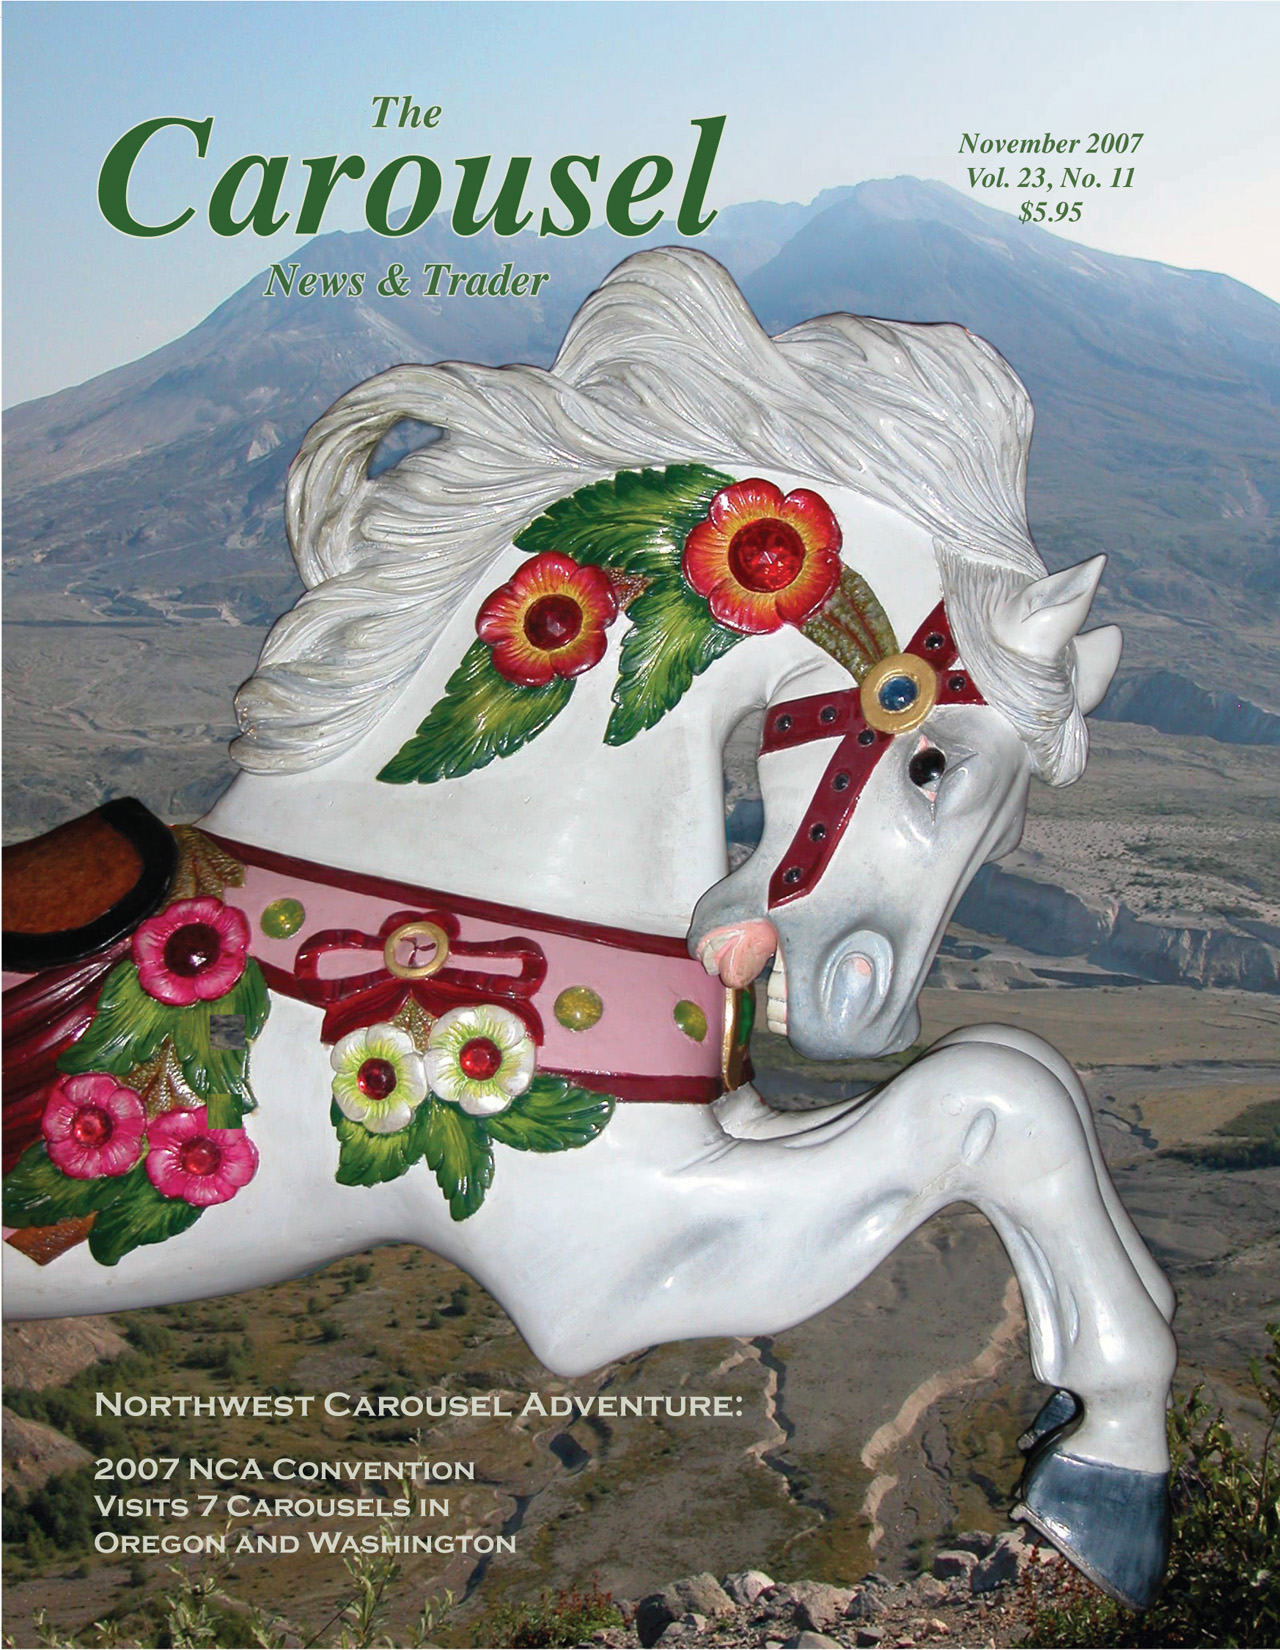 Issue No. 11, Vol. 23 – November 2007